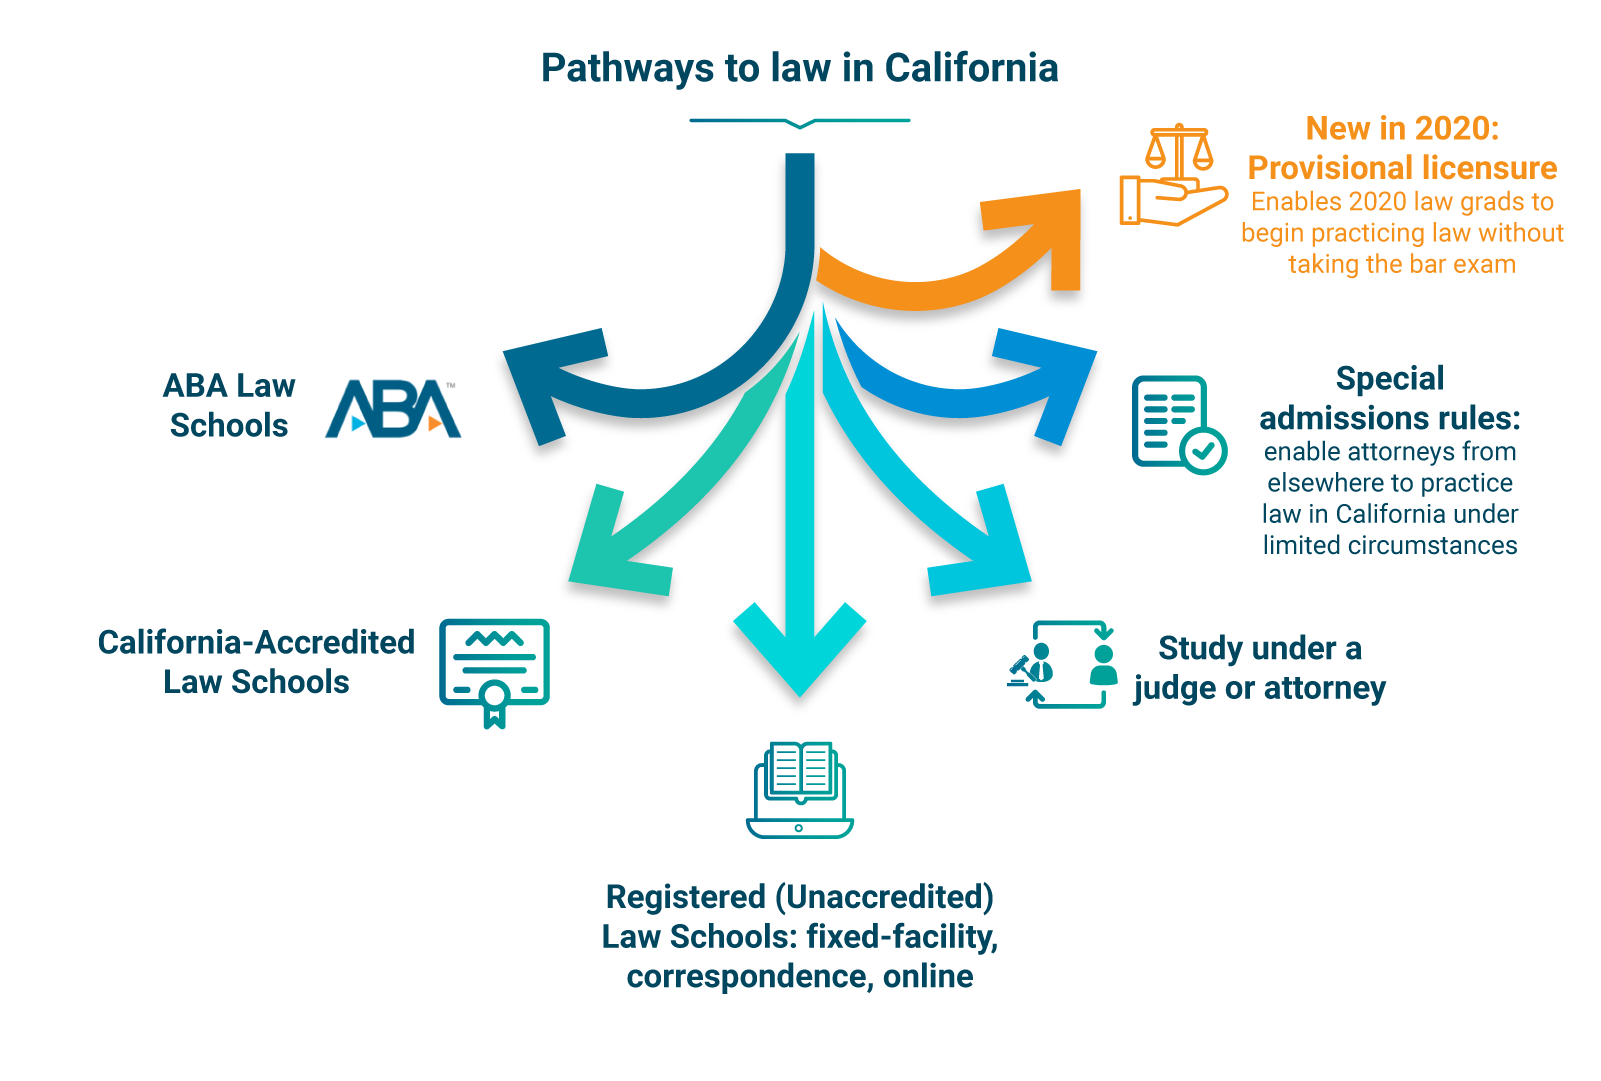 This image shows the different ways law students can become a lawyer in California